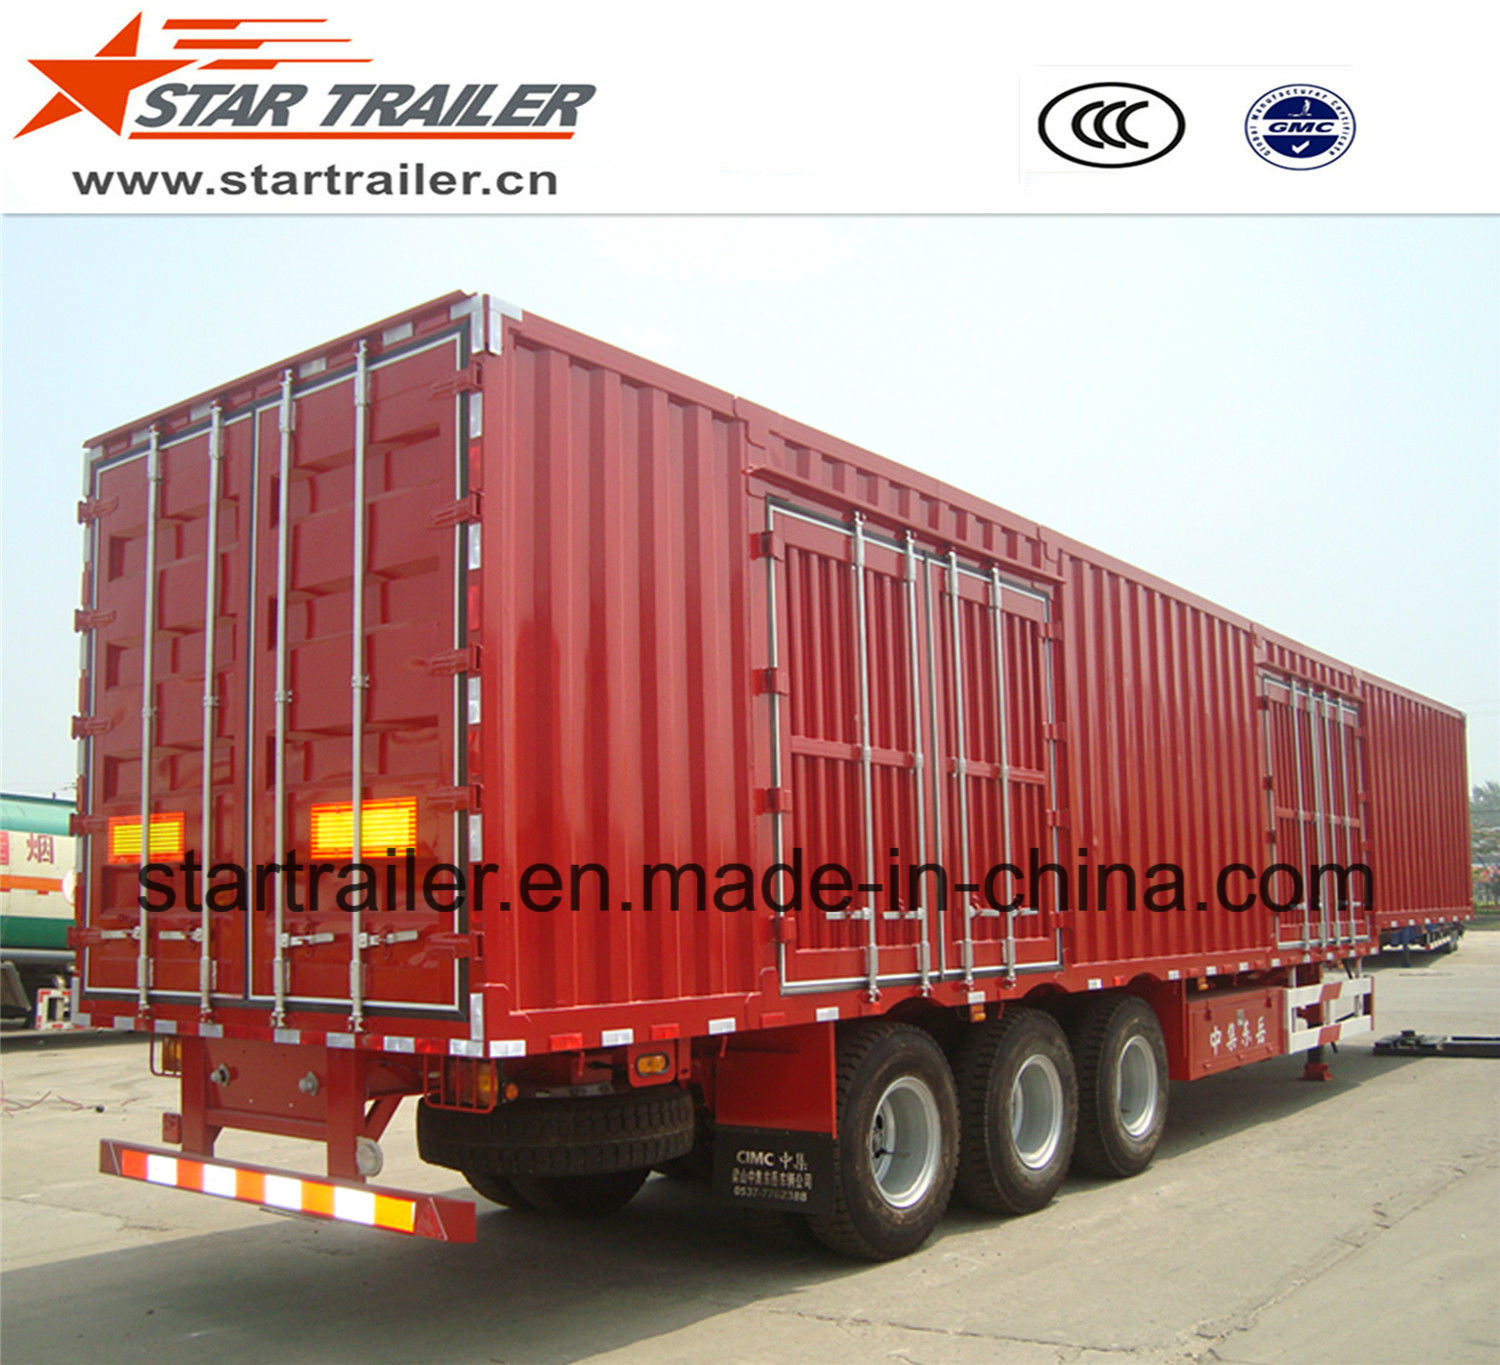 3 Axles Van Type Cargo Trailer